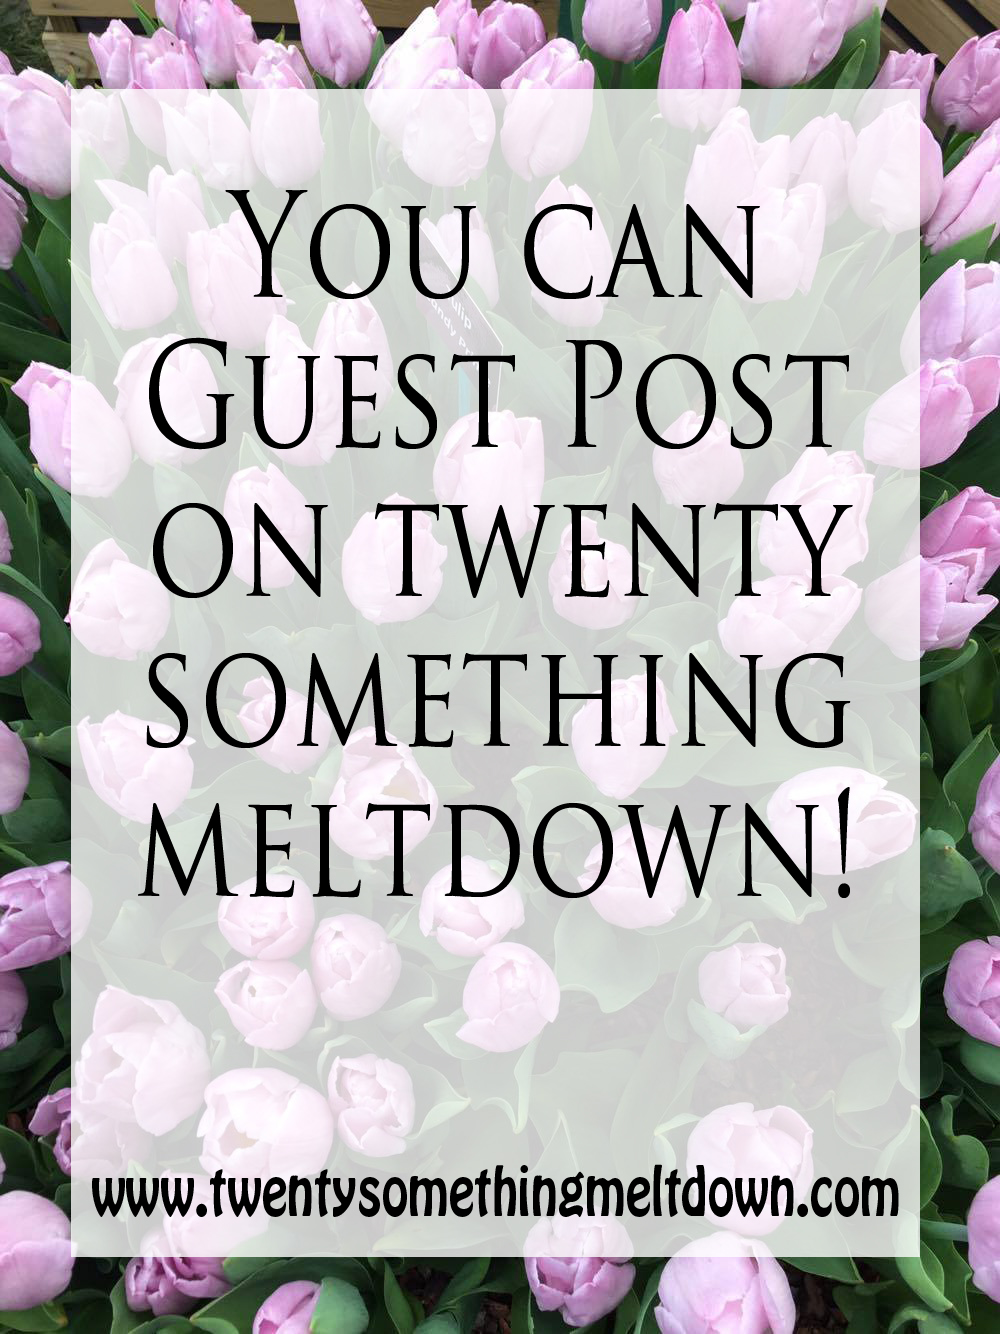 Guest Blog on Twenty Something Meltdown.